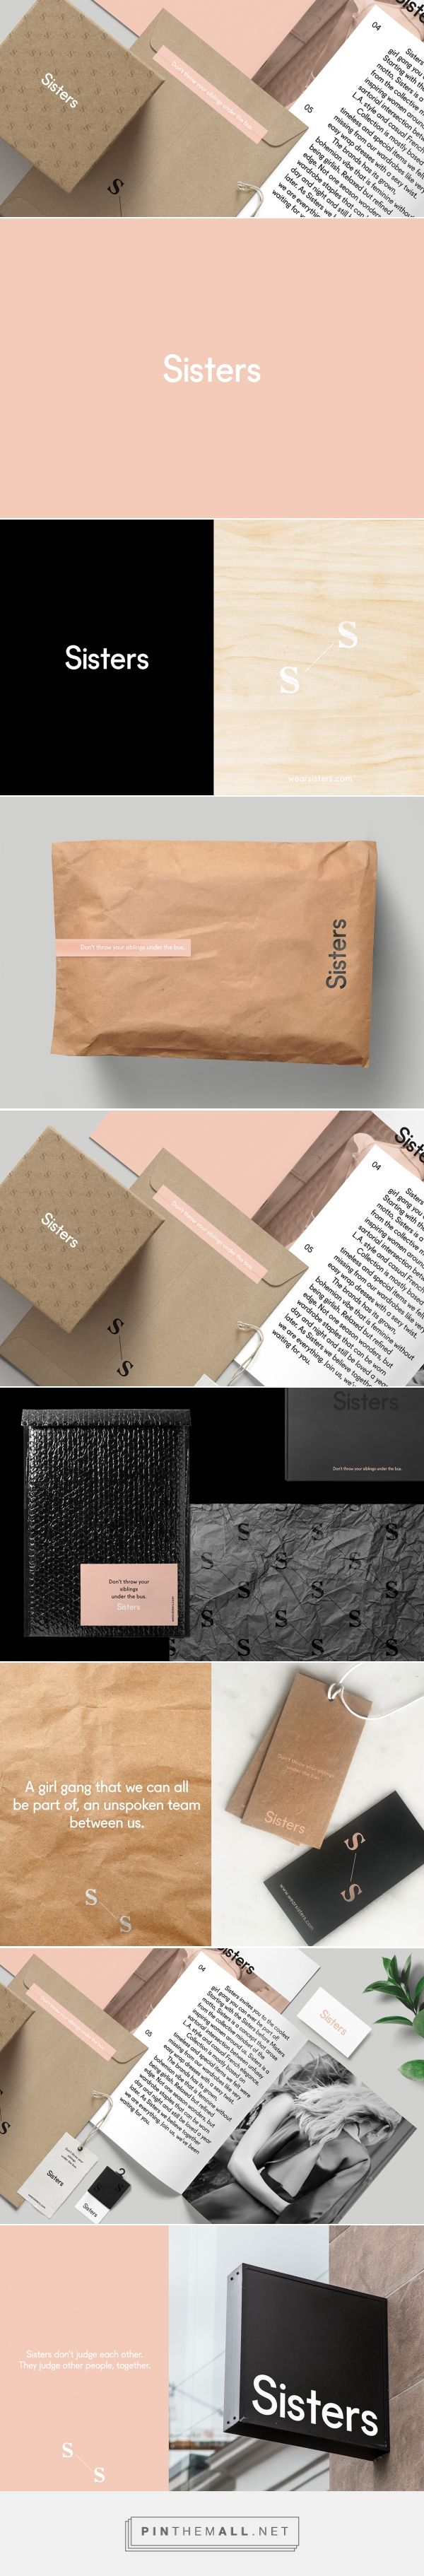 Packaging and branding for Sisters founded by Senem Mursaloğlu via Mindsparkle Mag. PD